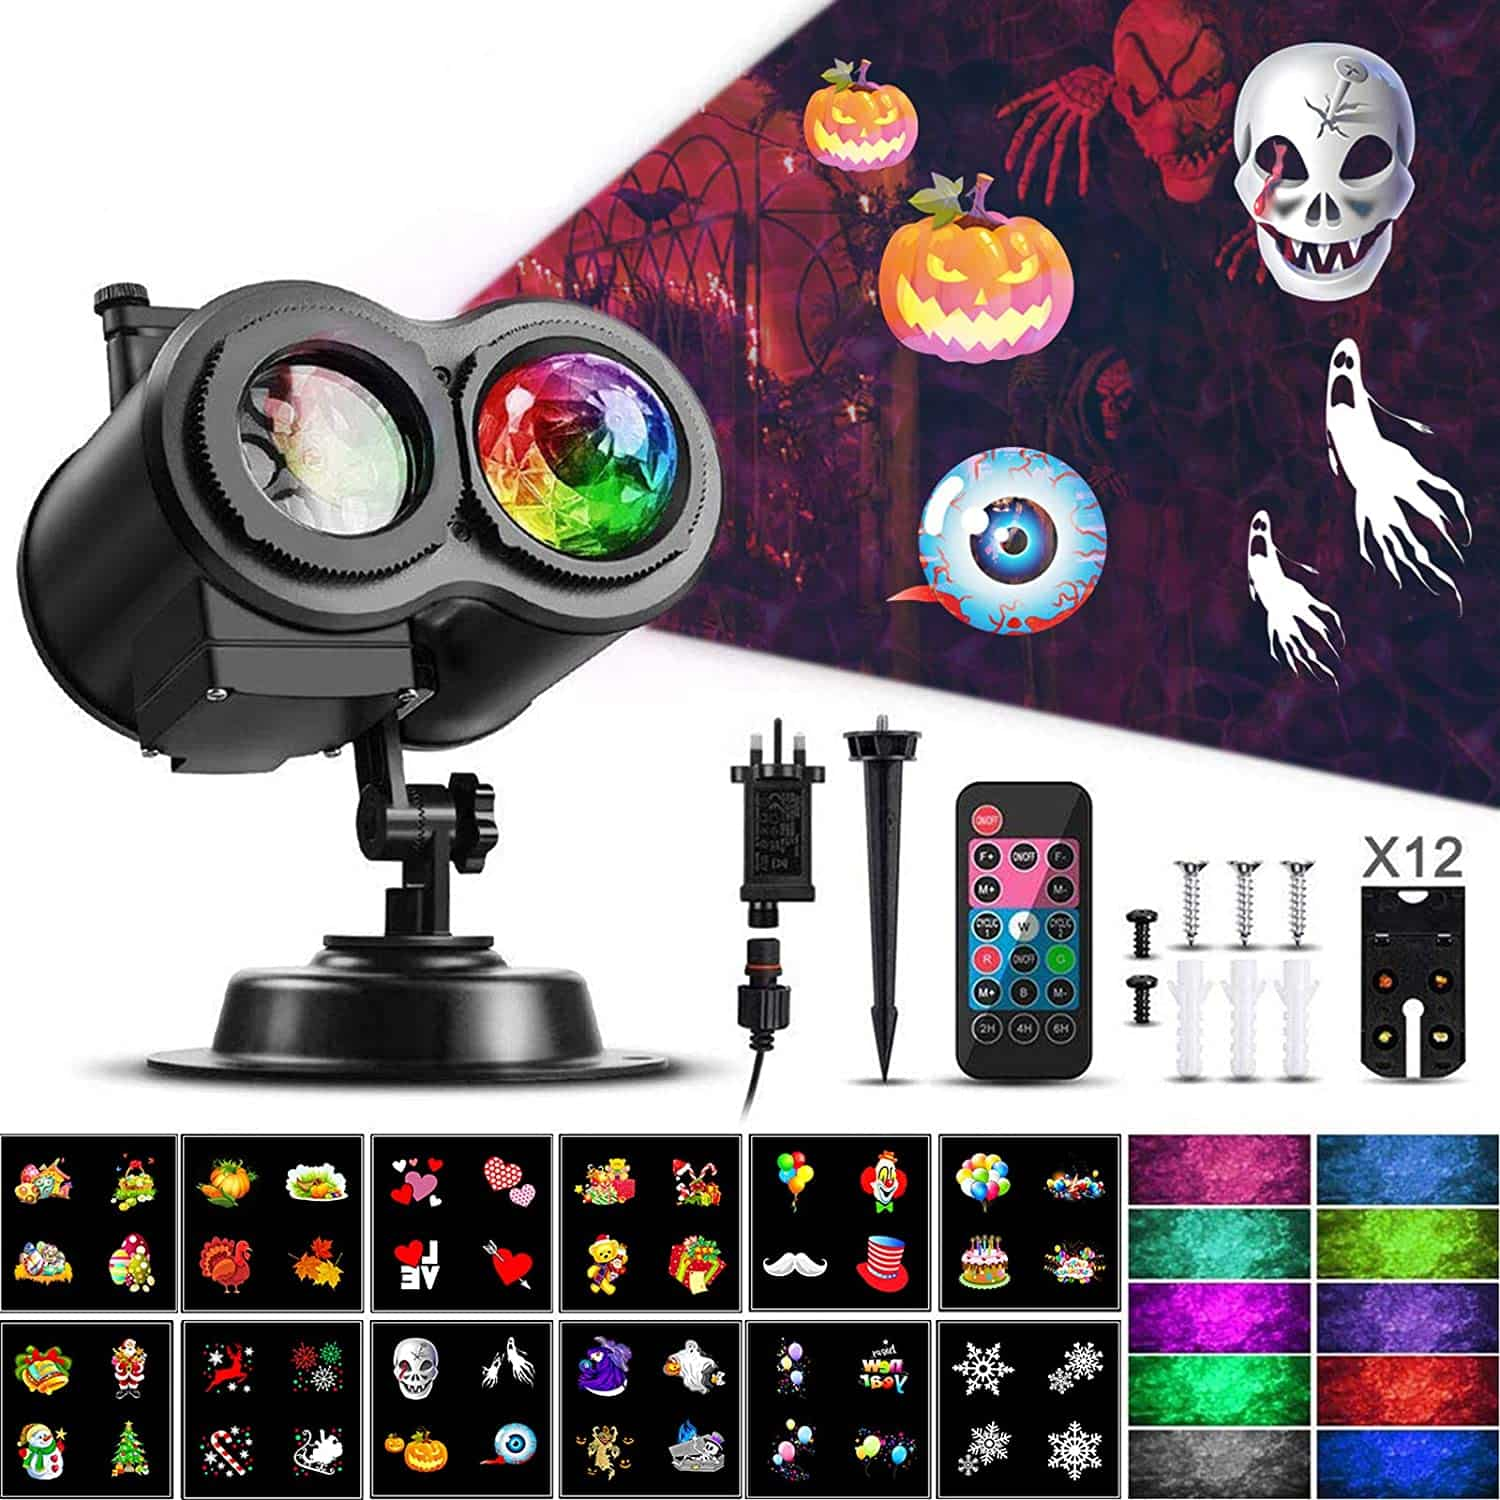 ACVCY LED Rotation Moving Projector 10 Colors & 12 Slides For Christmas Garden